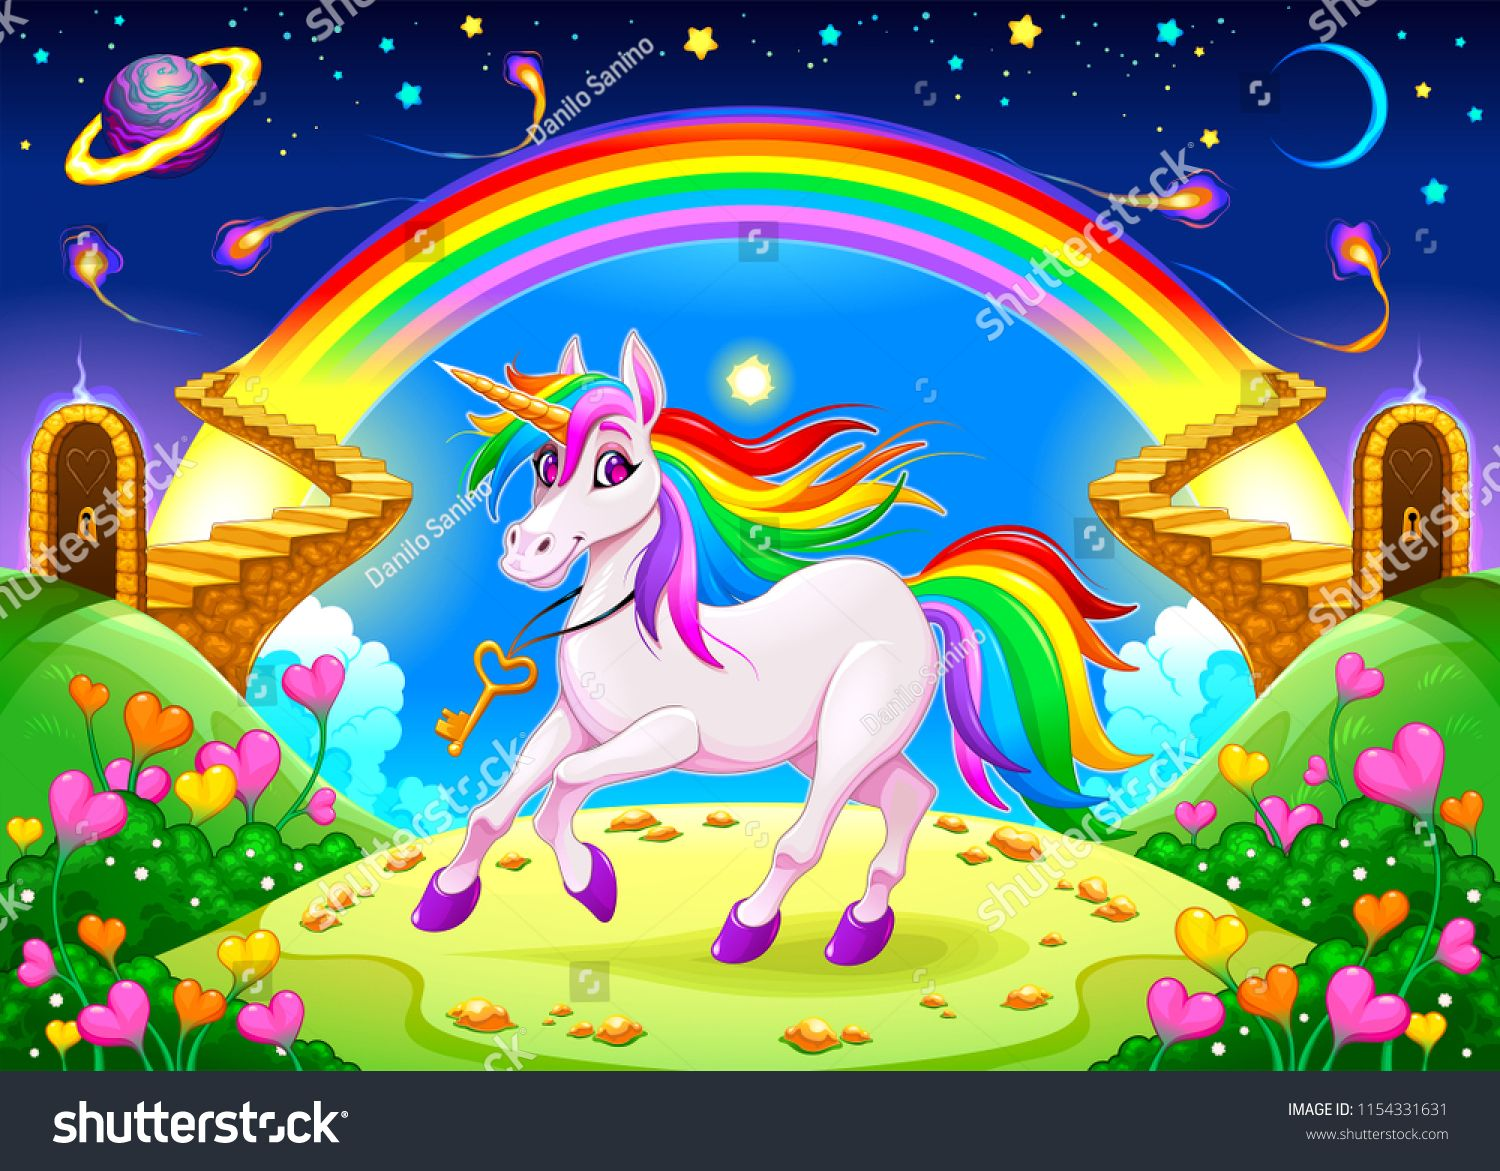 Rainbow Unicorn In A Fantasy Landscape With Golden Stairs Vector